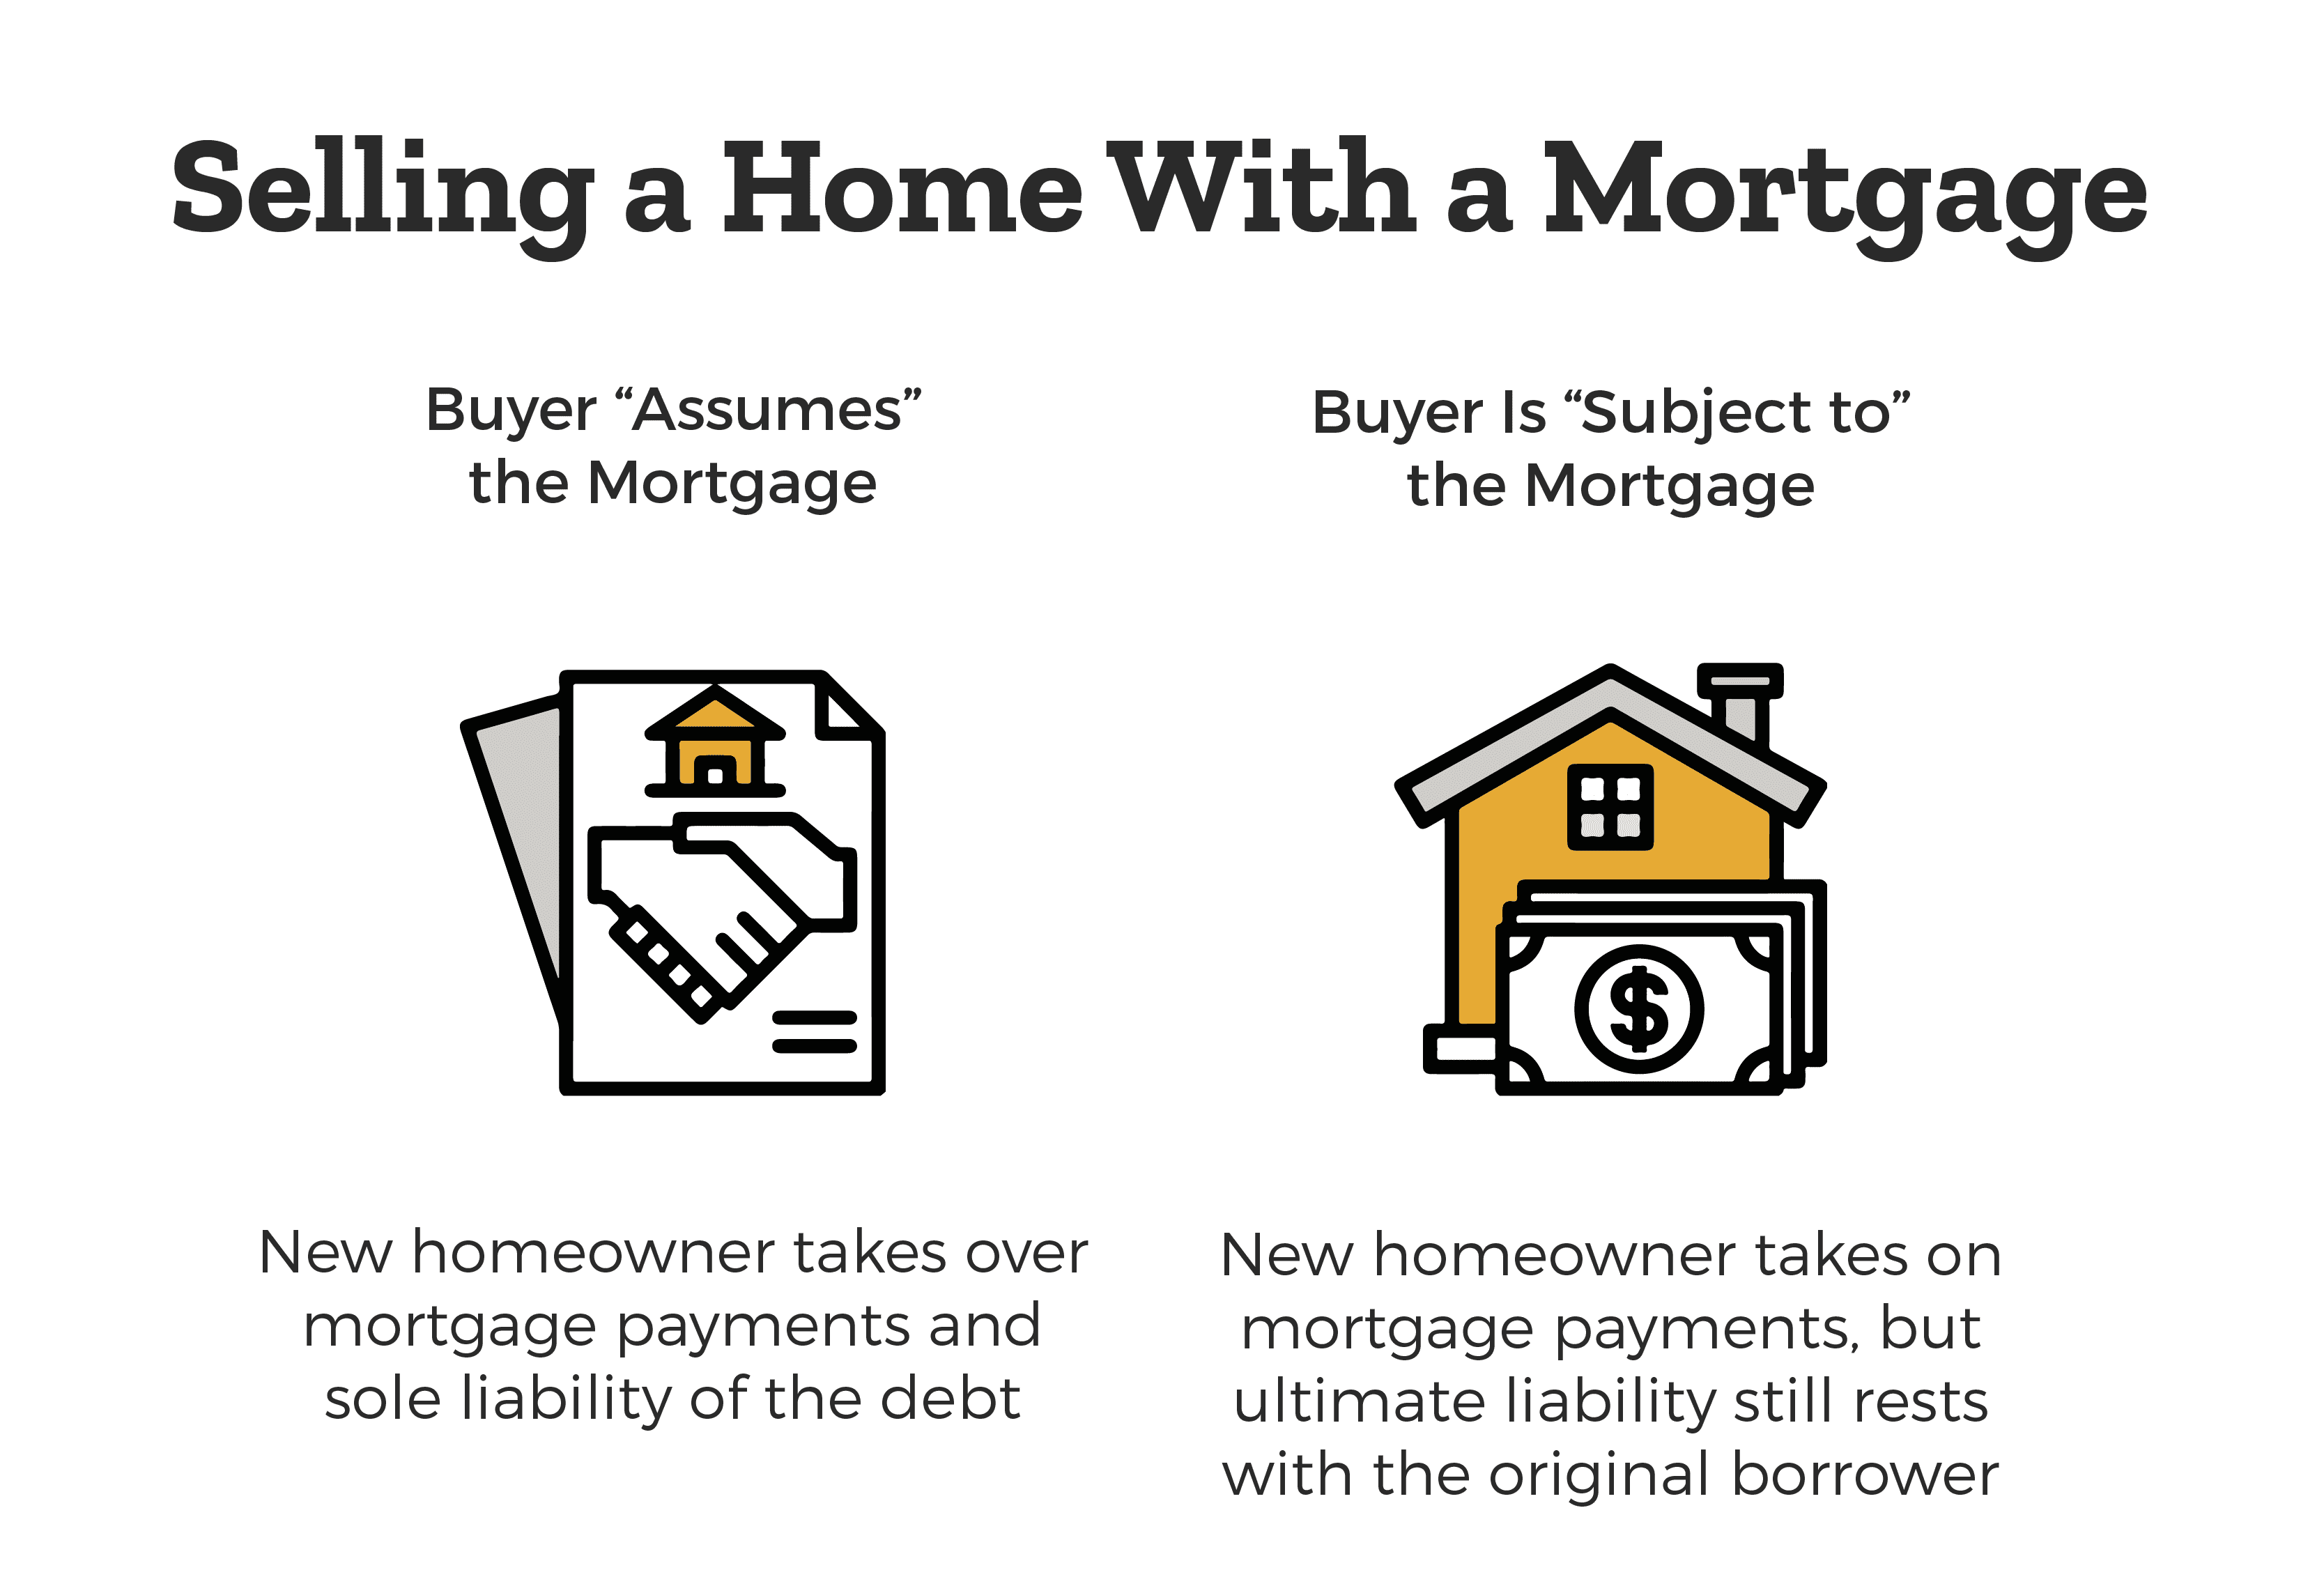 How Selling a Home With a Mortgage Works in Florida - There are two types illustrated. Buyer assumes the mortgage meaning the new homeowner takes over mortgage payments and sole liability of the debt. Buyer is subject to the mortgage meaning the new homeowner takes on mortgage payments, but ultimate liability still rests with the original borrower.